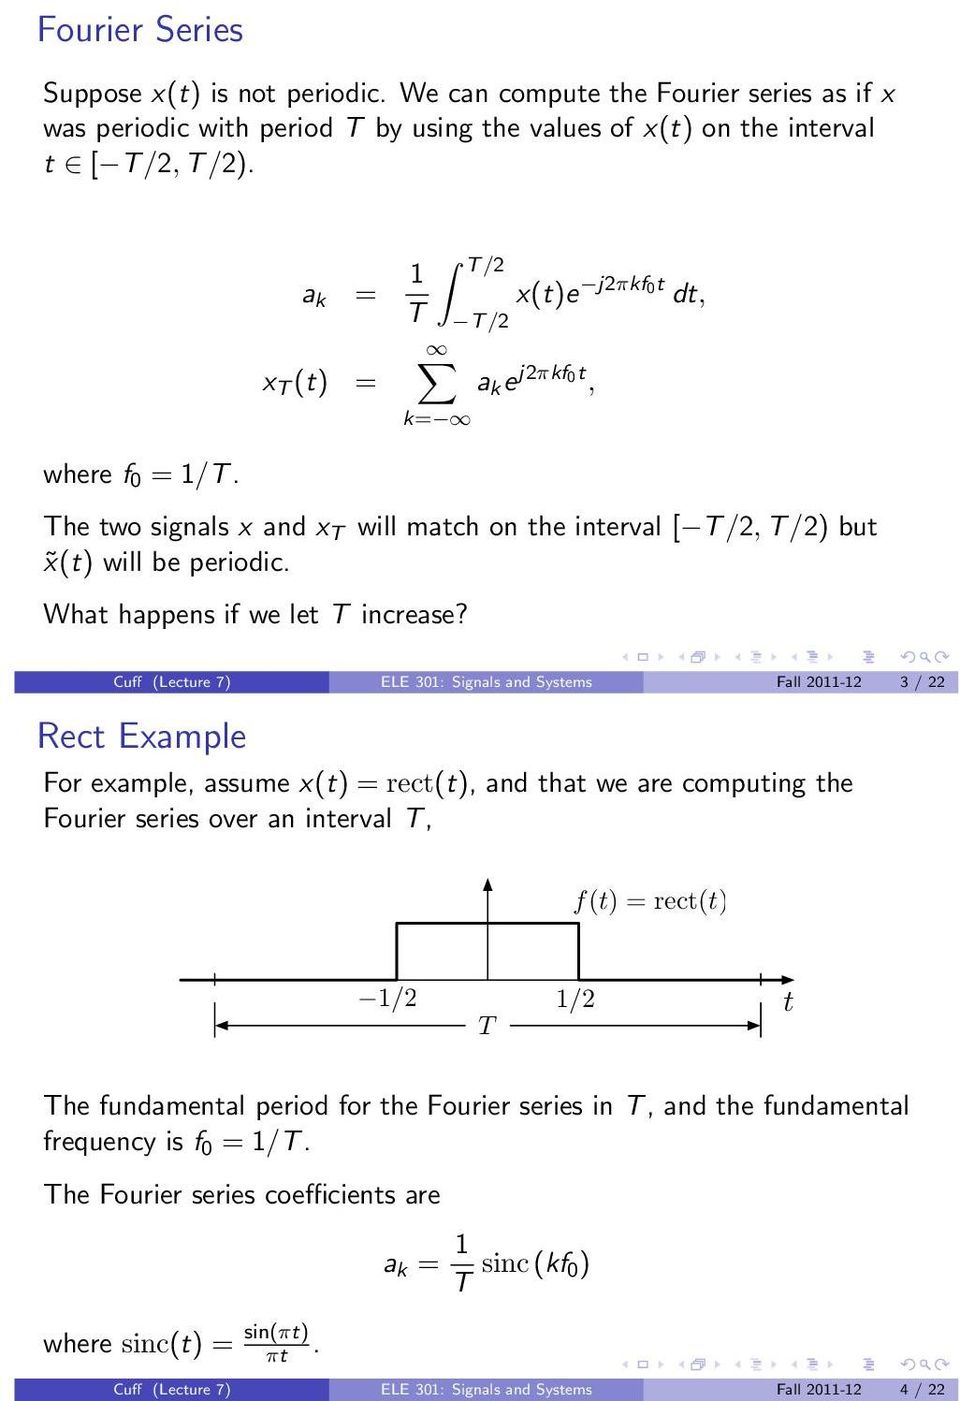 Cuff (Lecture 7) ELE 3: Signals and Systems Fall 2-2 3 / 22 Rect Example For example, assume x(t) = rect(t), and that we are computing the Fourier series over an interval T, f(t) = rect(t) /2 /2 t T